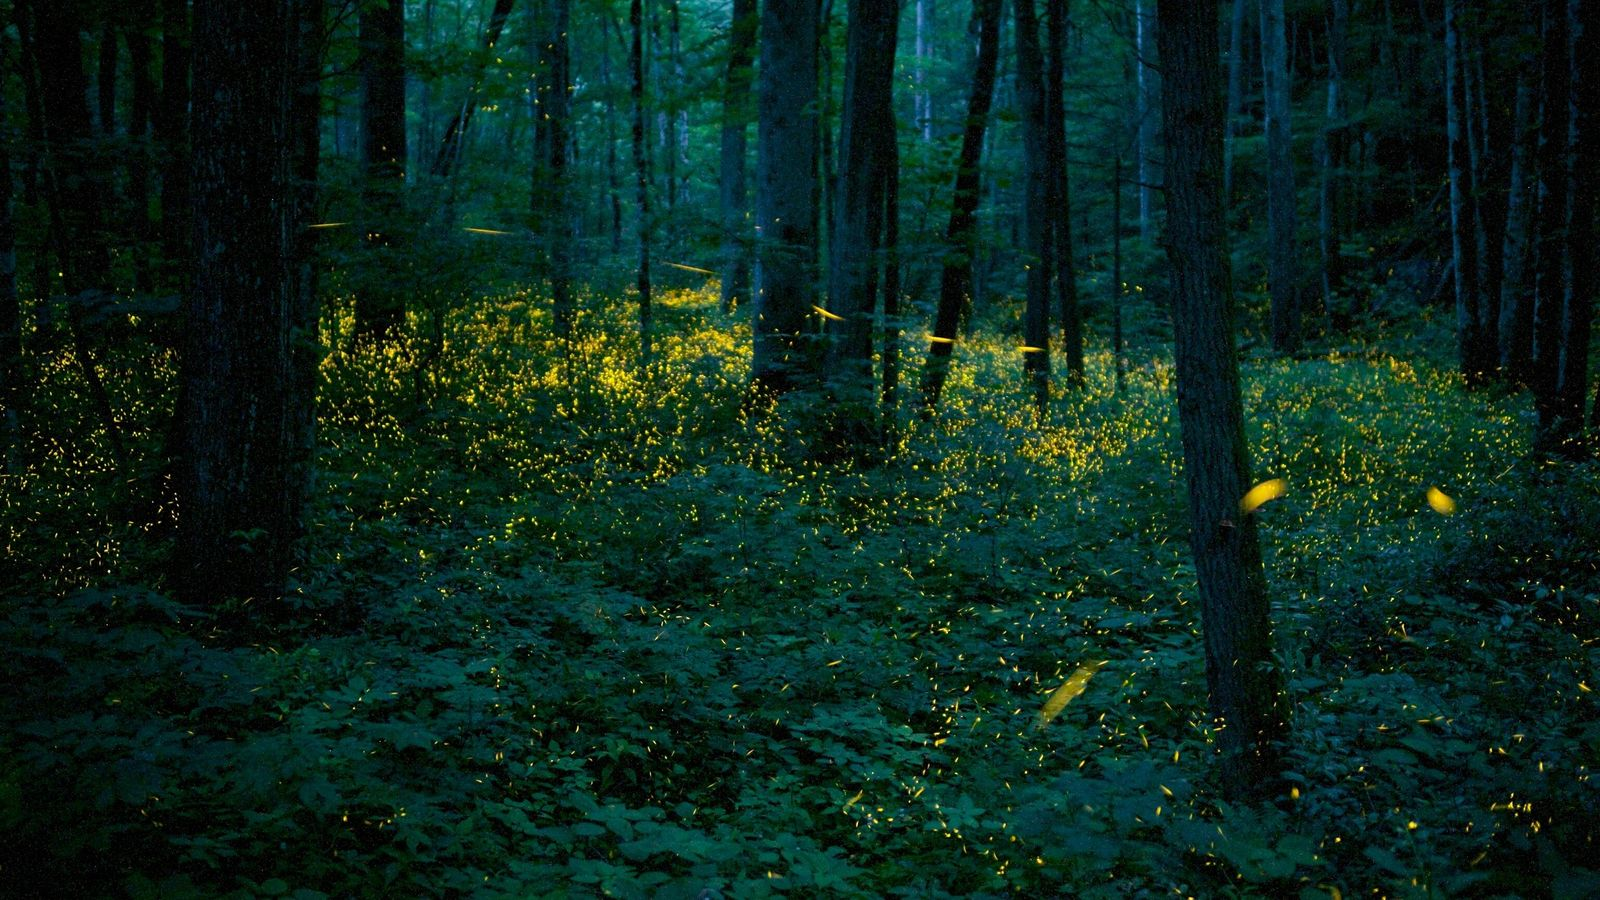 Syncronous Fireflies (Photinus carolinus) illuminate the lush forests Smoky Mountains National Park Tennesse USA July